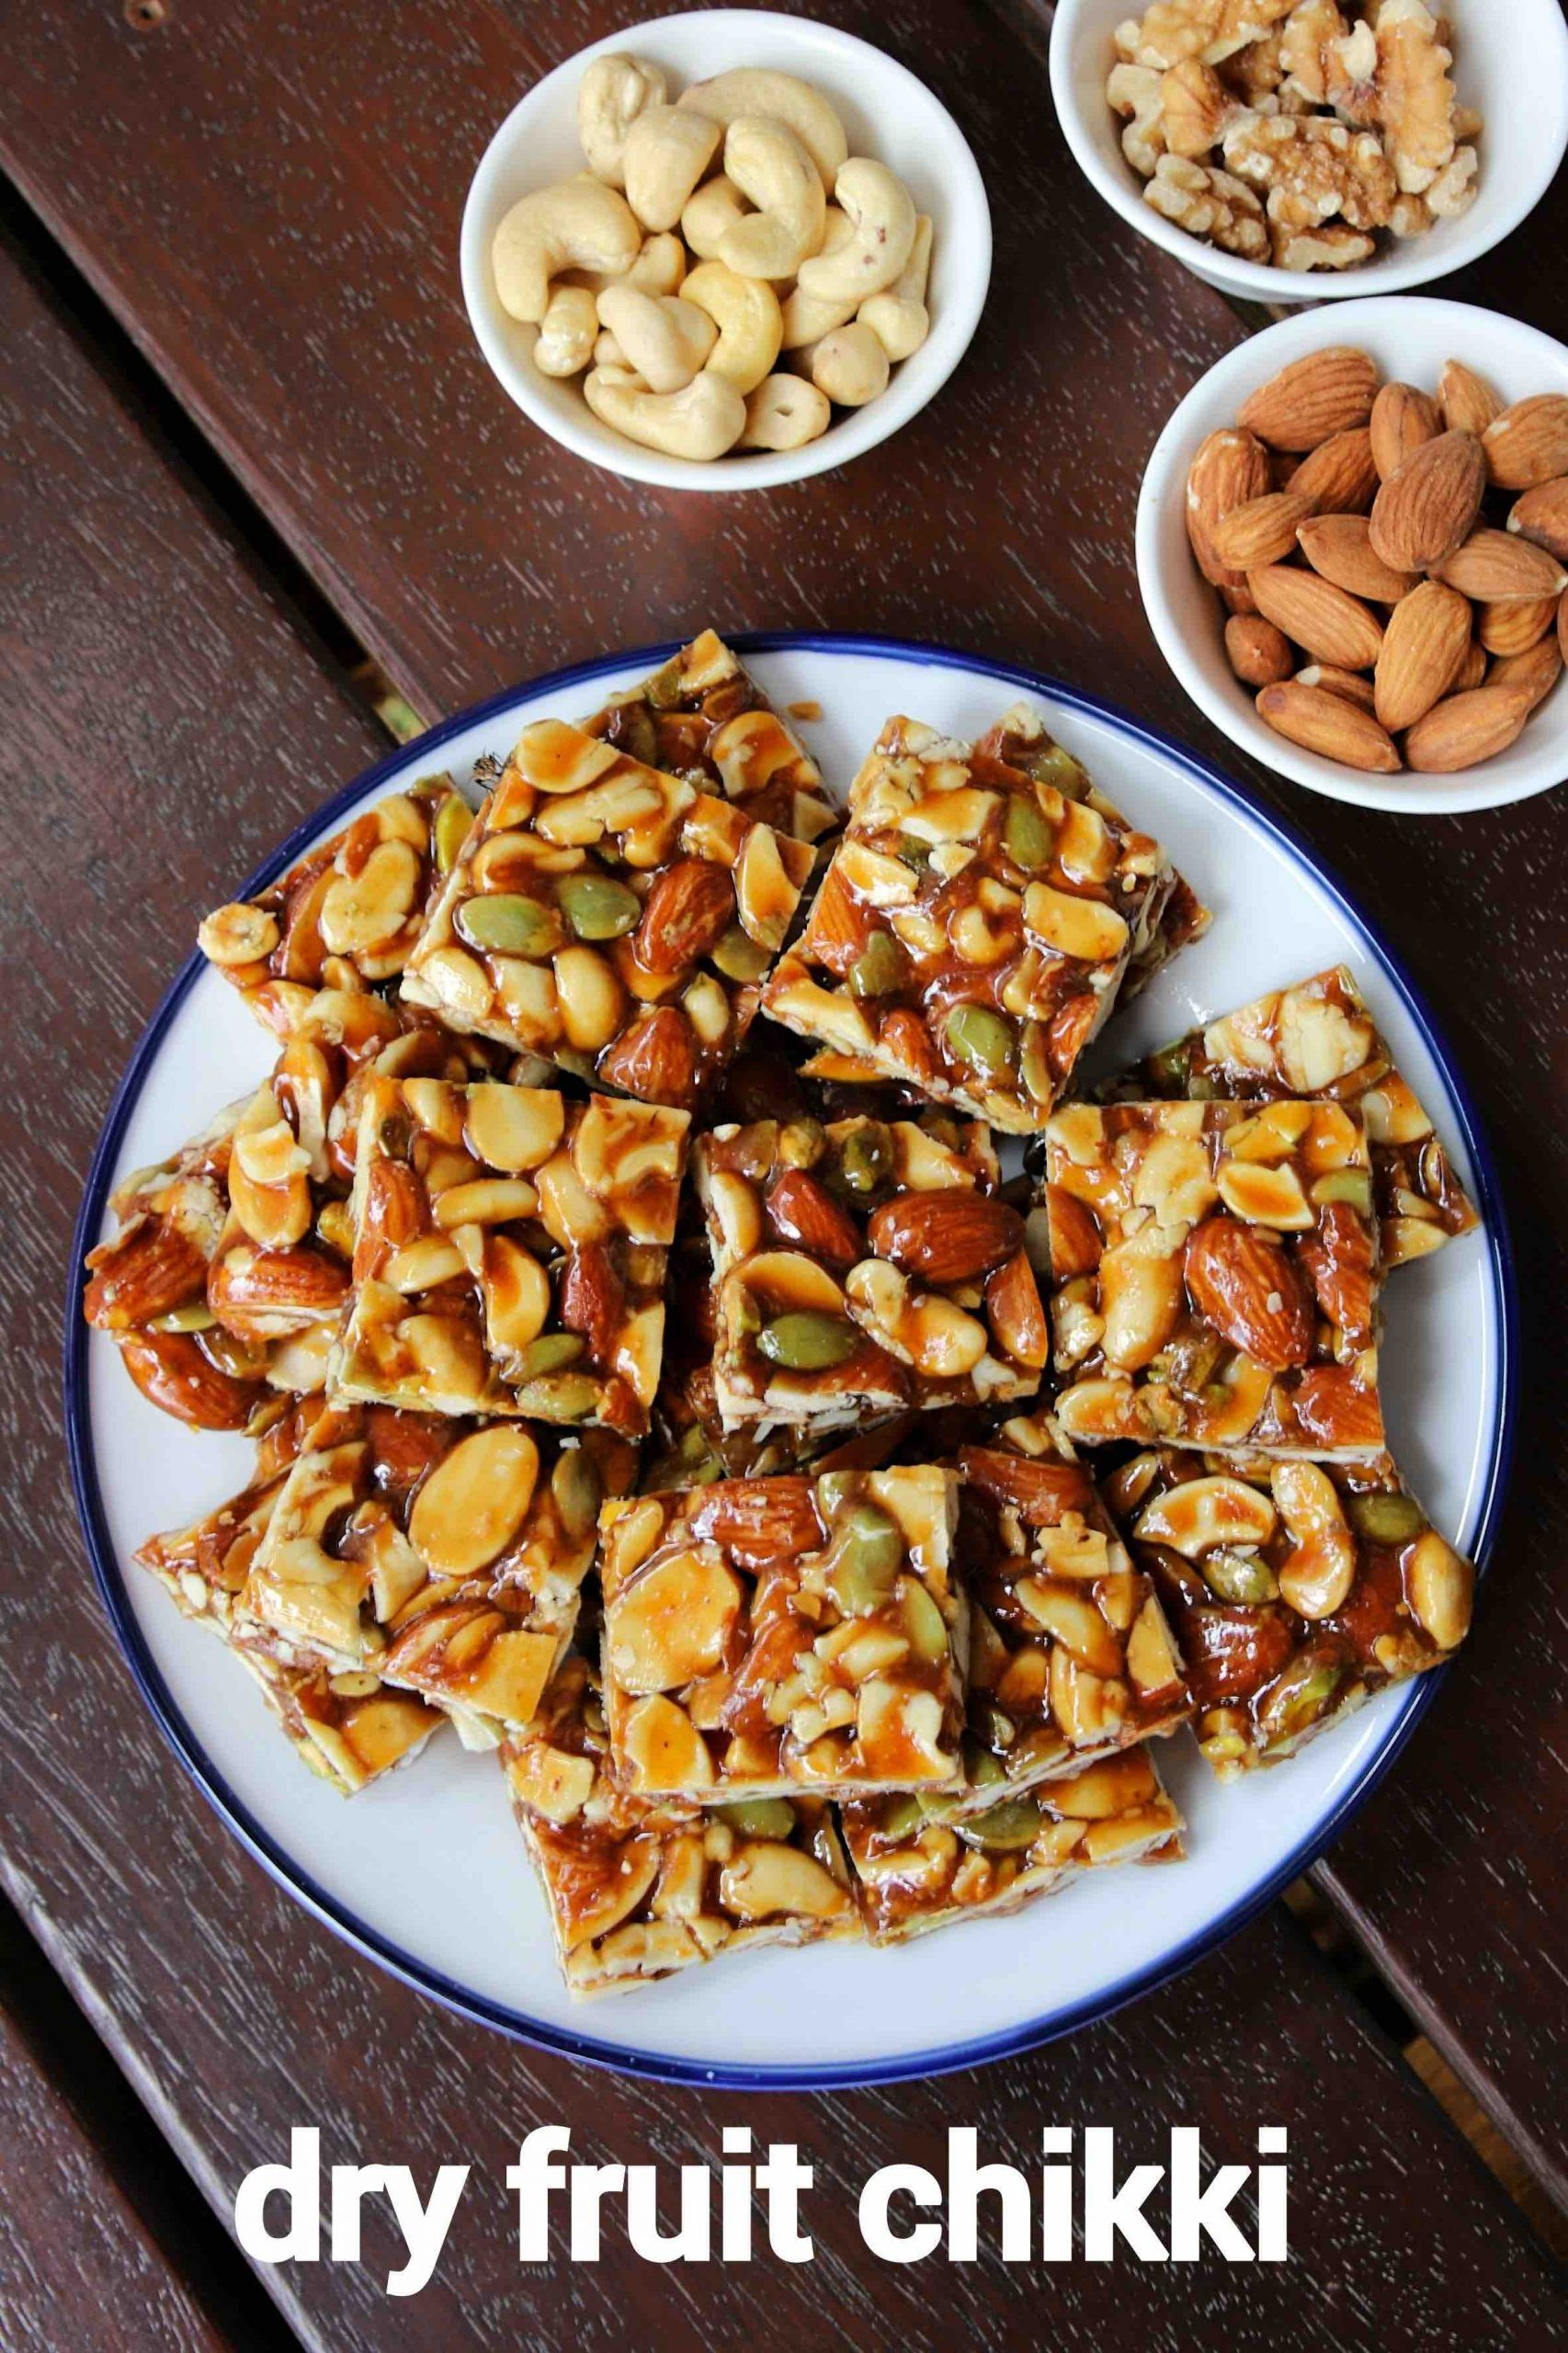 Dry fruit chikki recipe kaju badam chikki mixed nuts